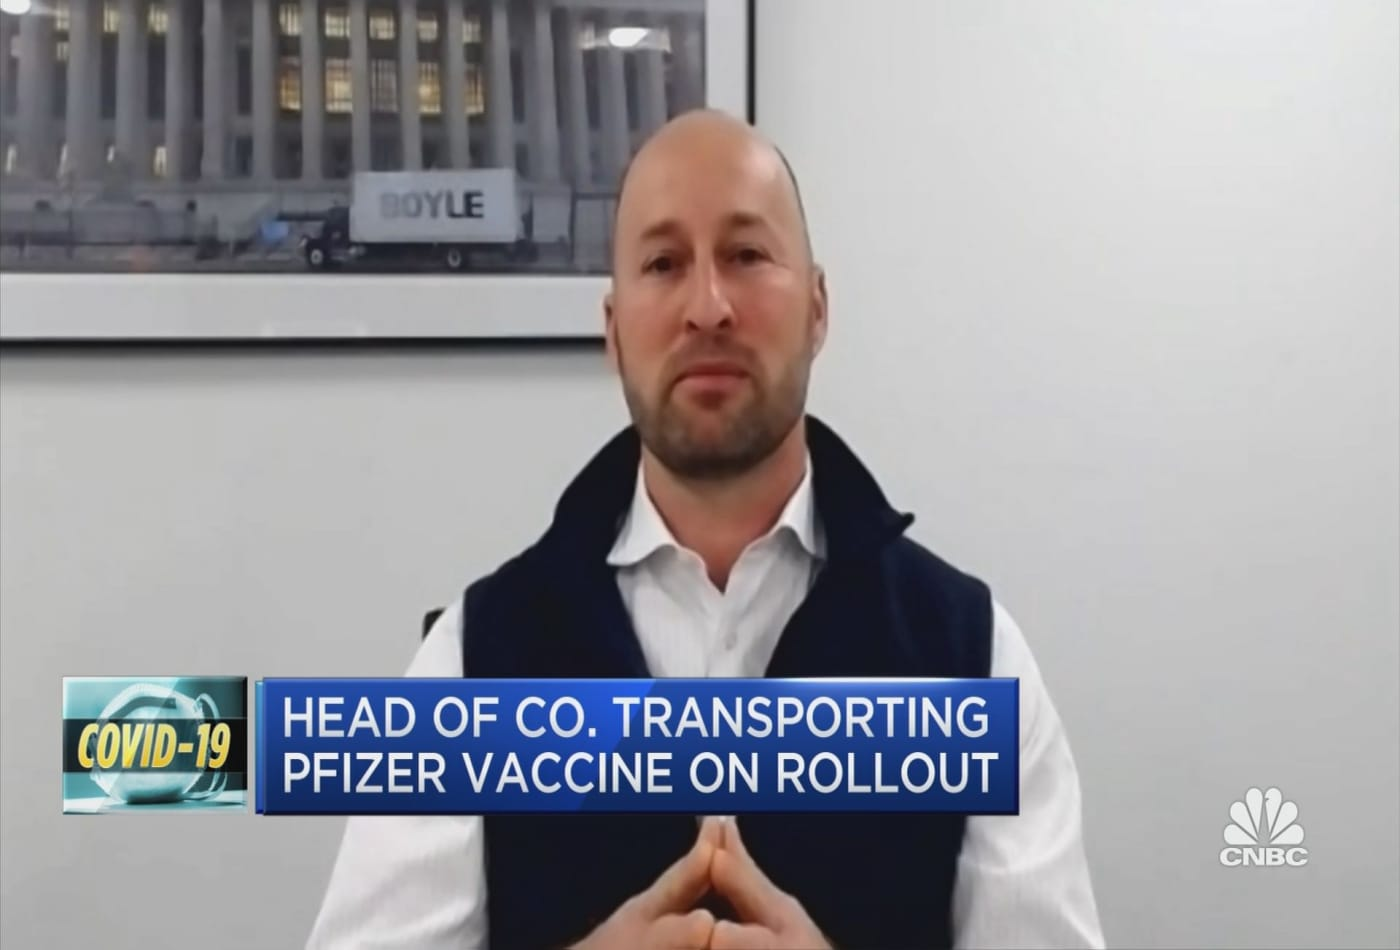 Head of trucking company transporting Pfizer vaccine discusses the first day of distribution